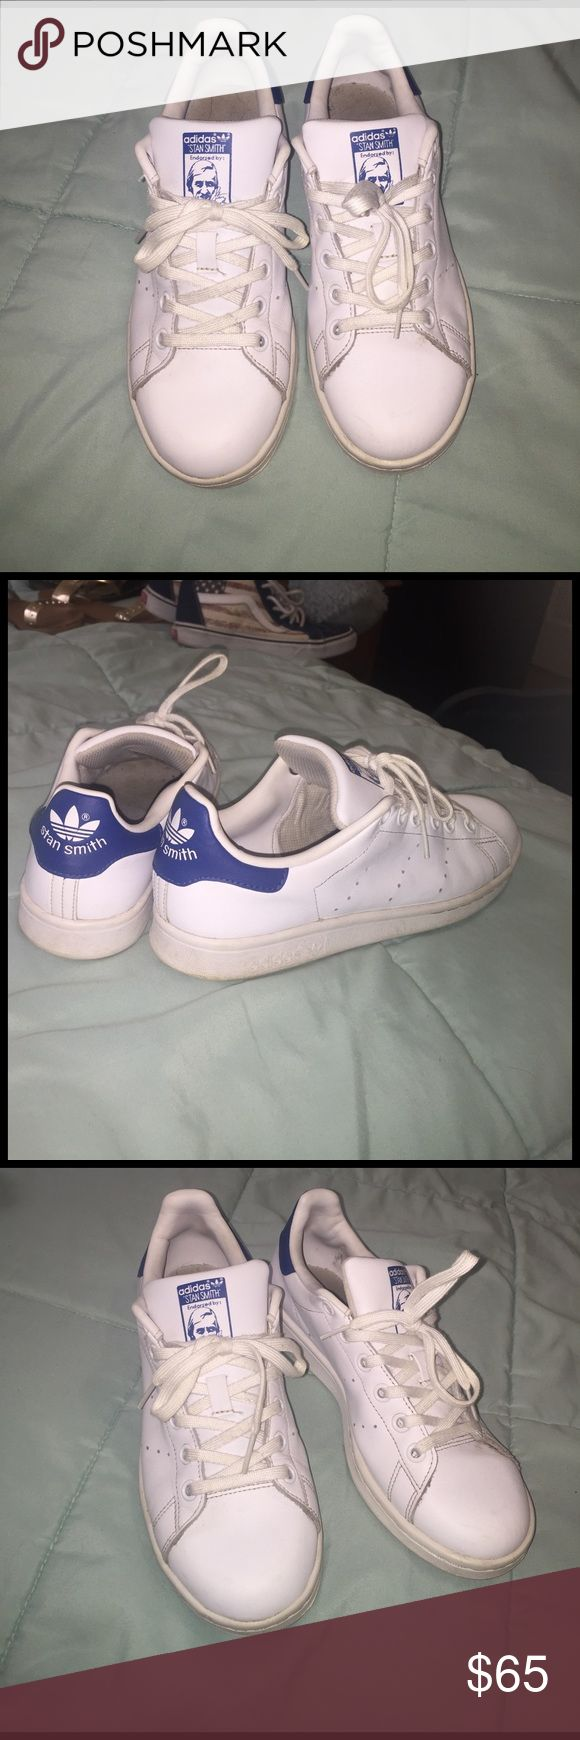 Stan Smith Adidas . White & Blue White and Blue Original Stan Smith Adidas . When you buy them before i send them off I will hand wash them 🤗✨ so they can look as fresh as they were when I got them (: Adidas Shoes Sneakers